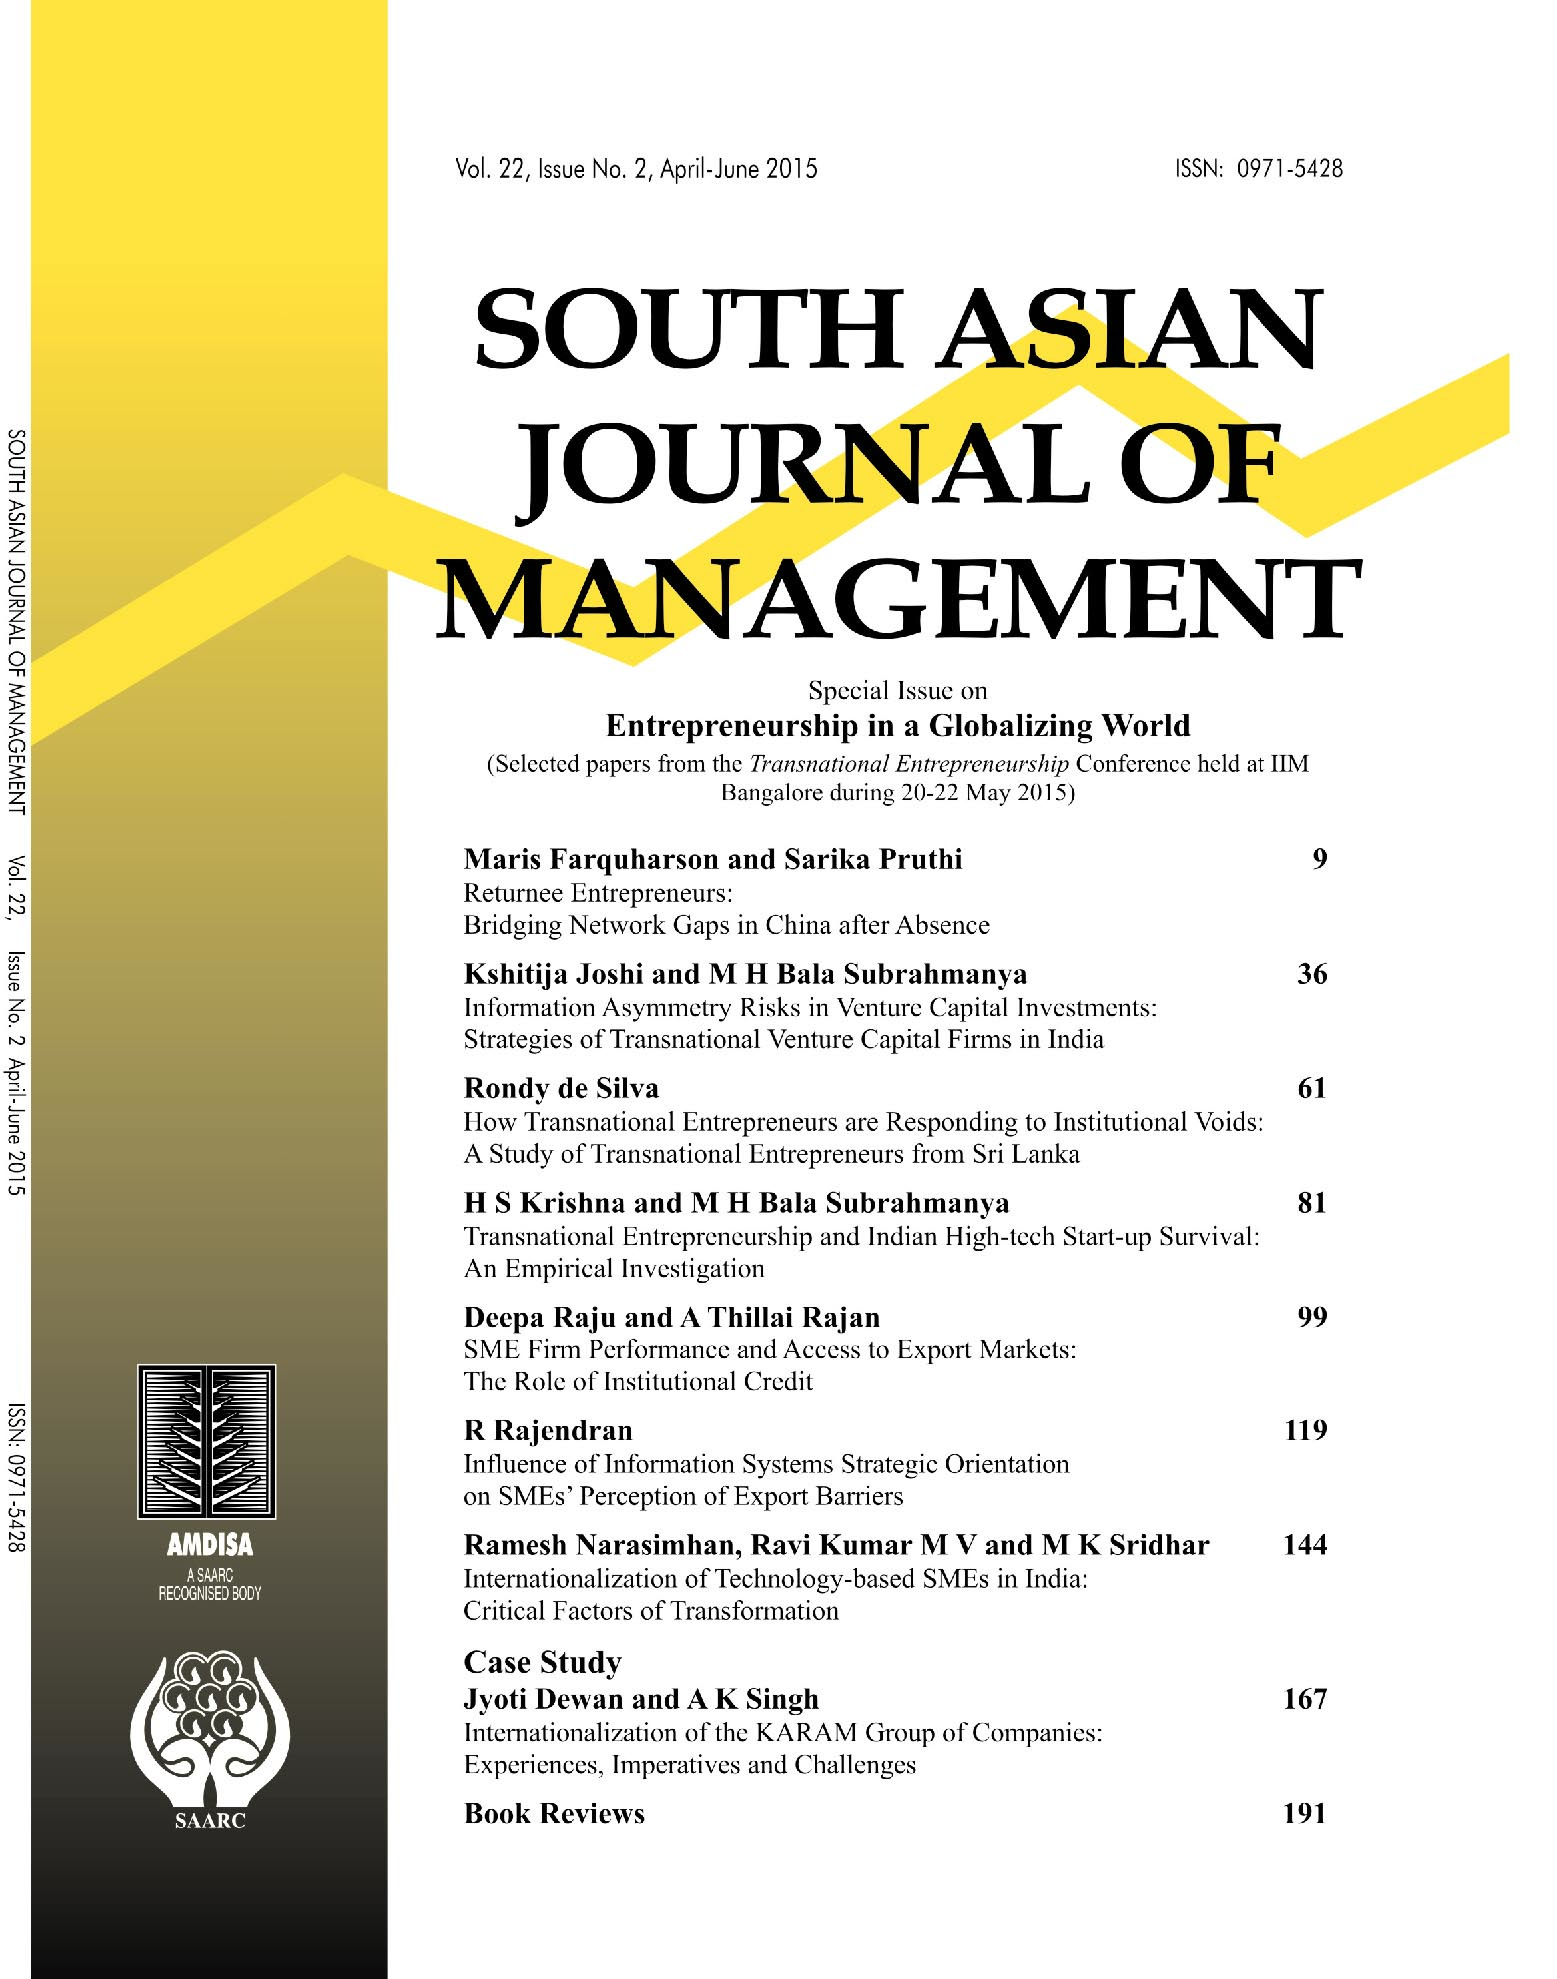 Issue No. 1 April - June 2015